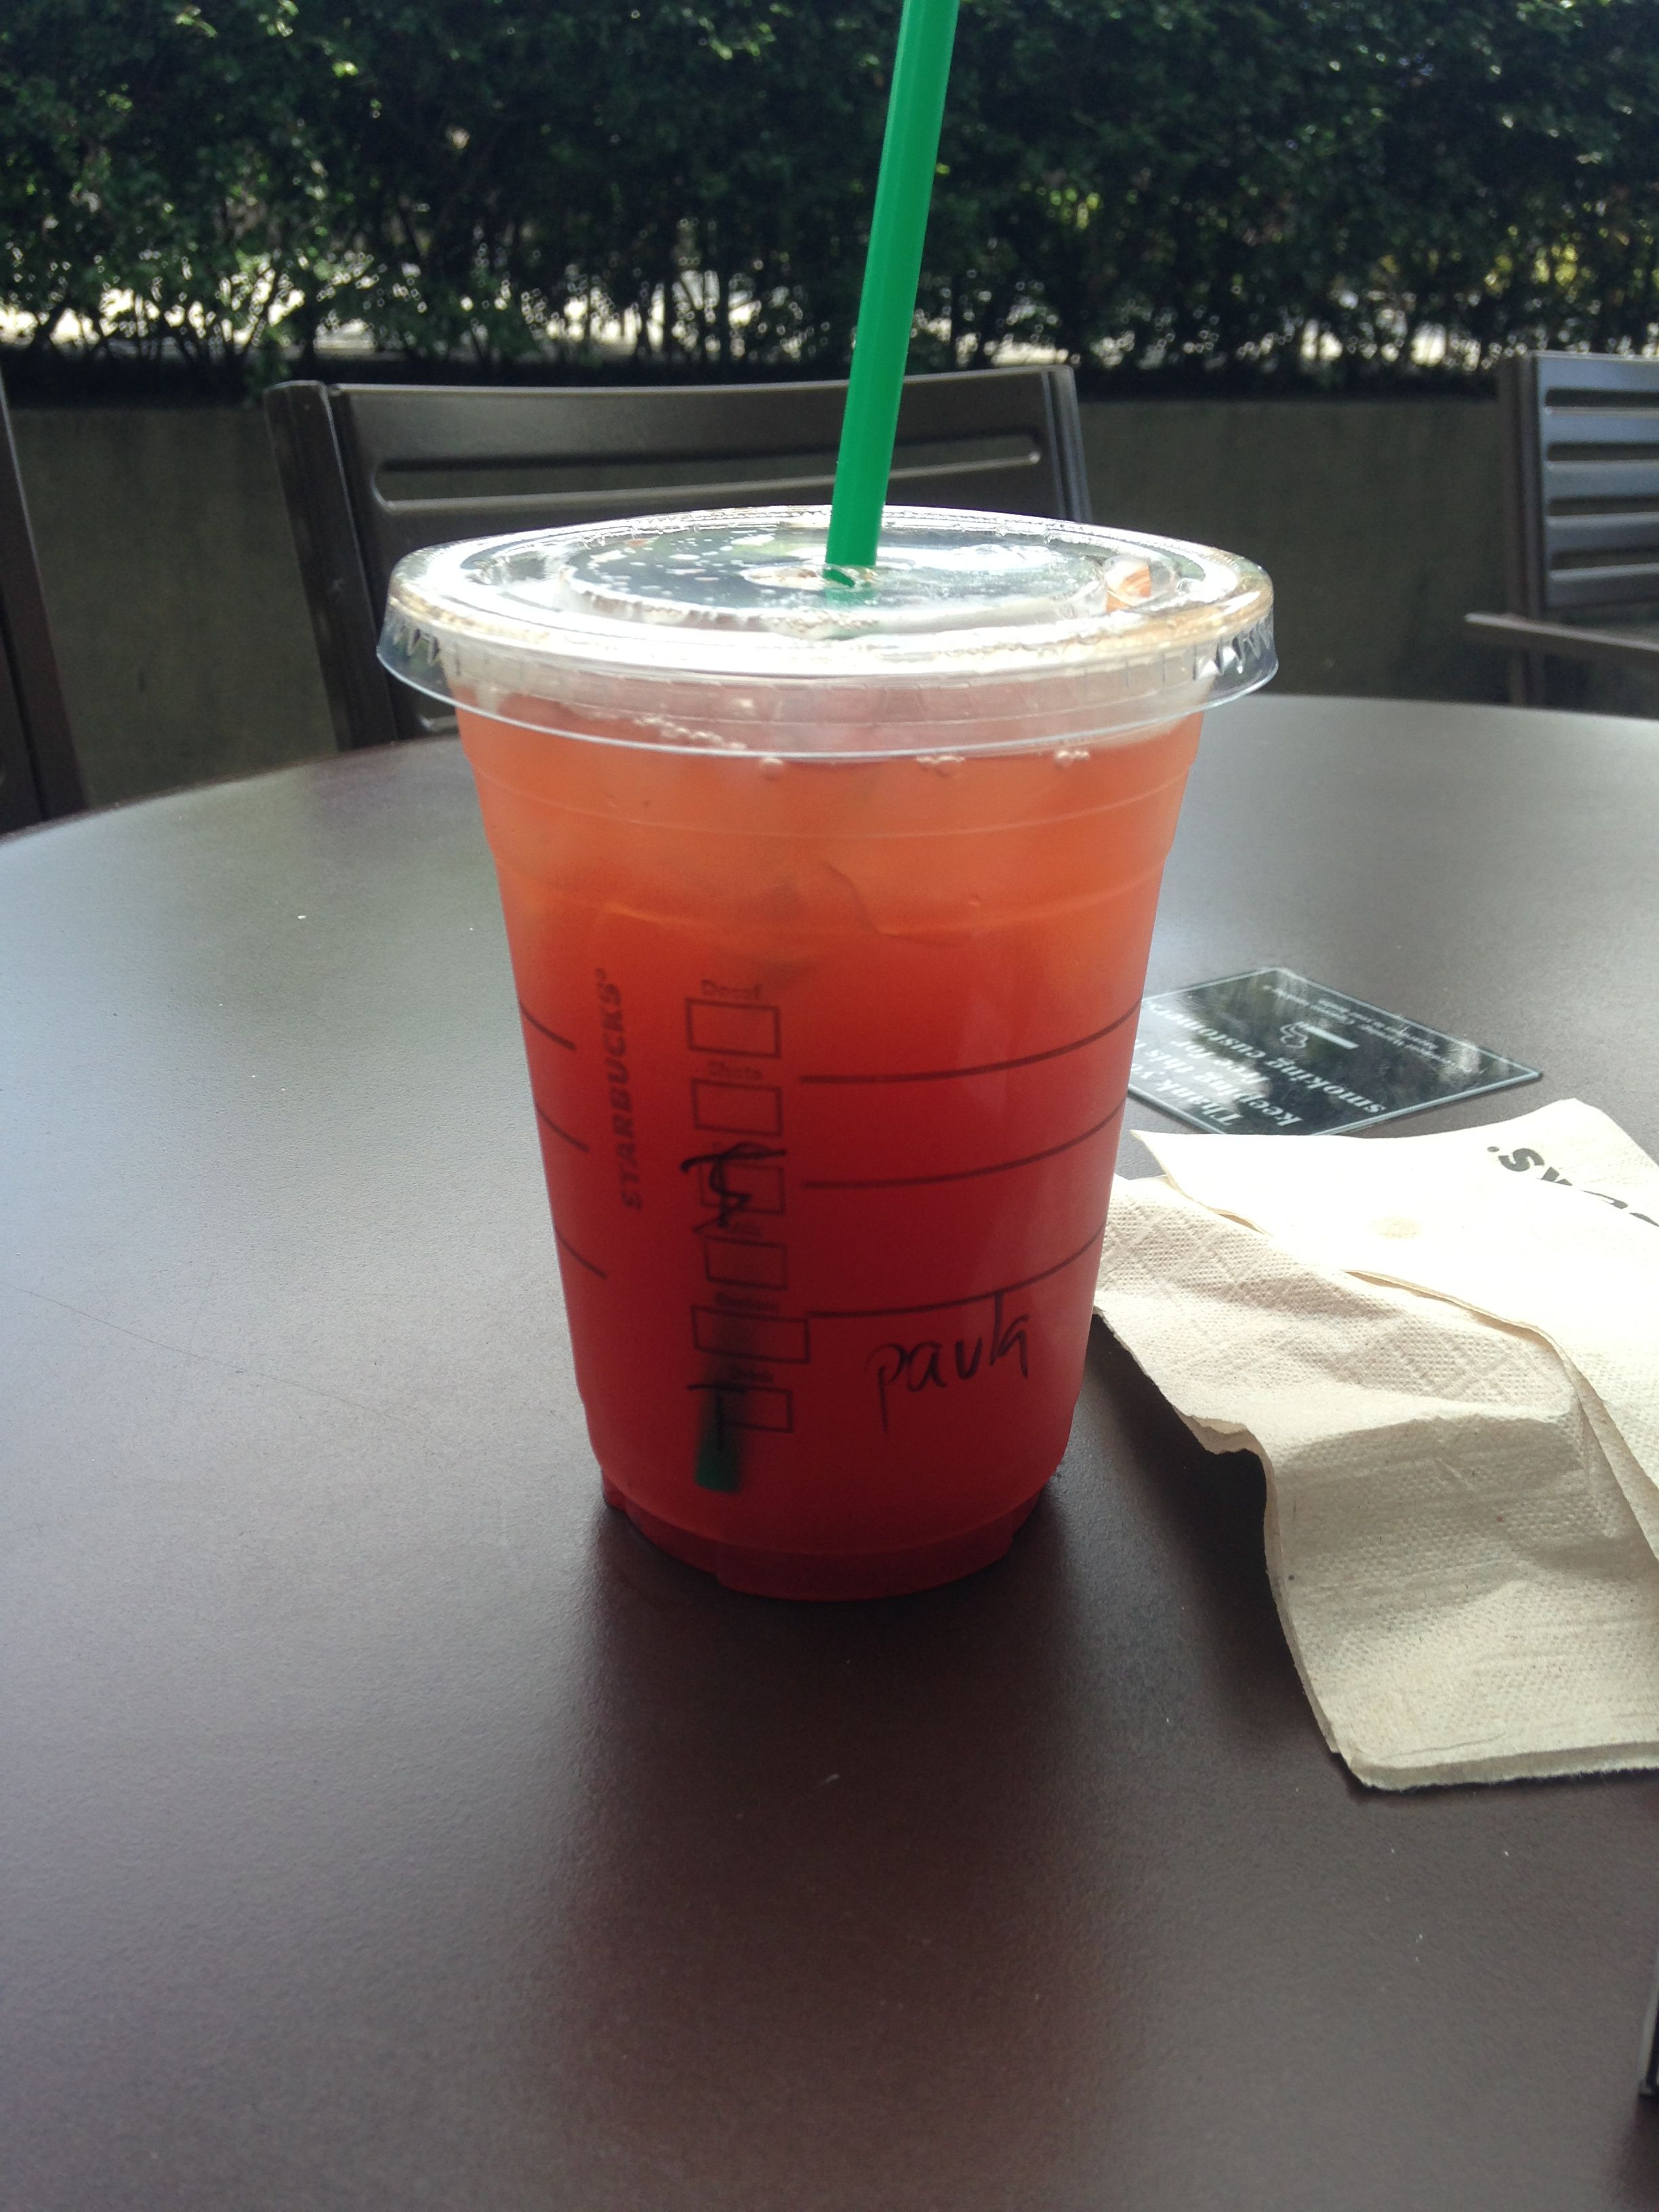 Iced black tea with strawberry syrup from Starbucks ...